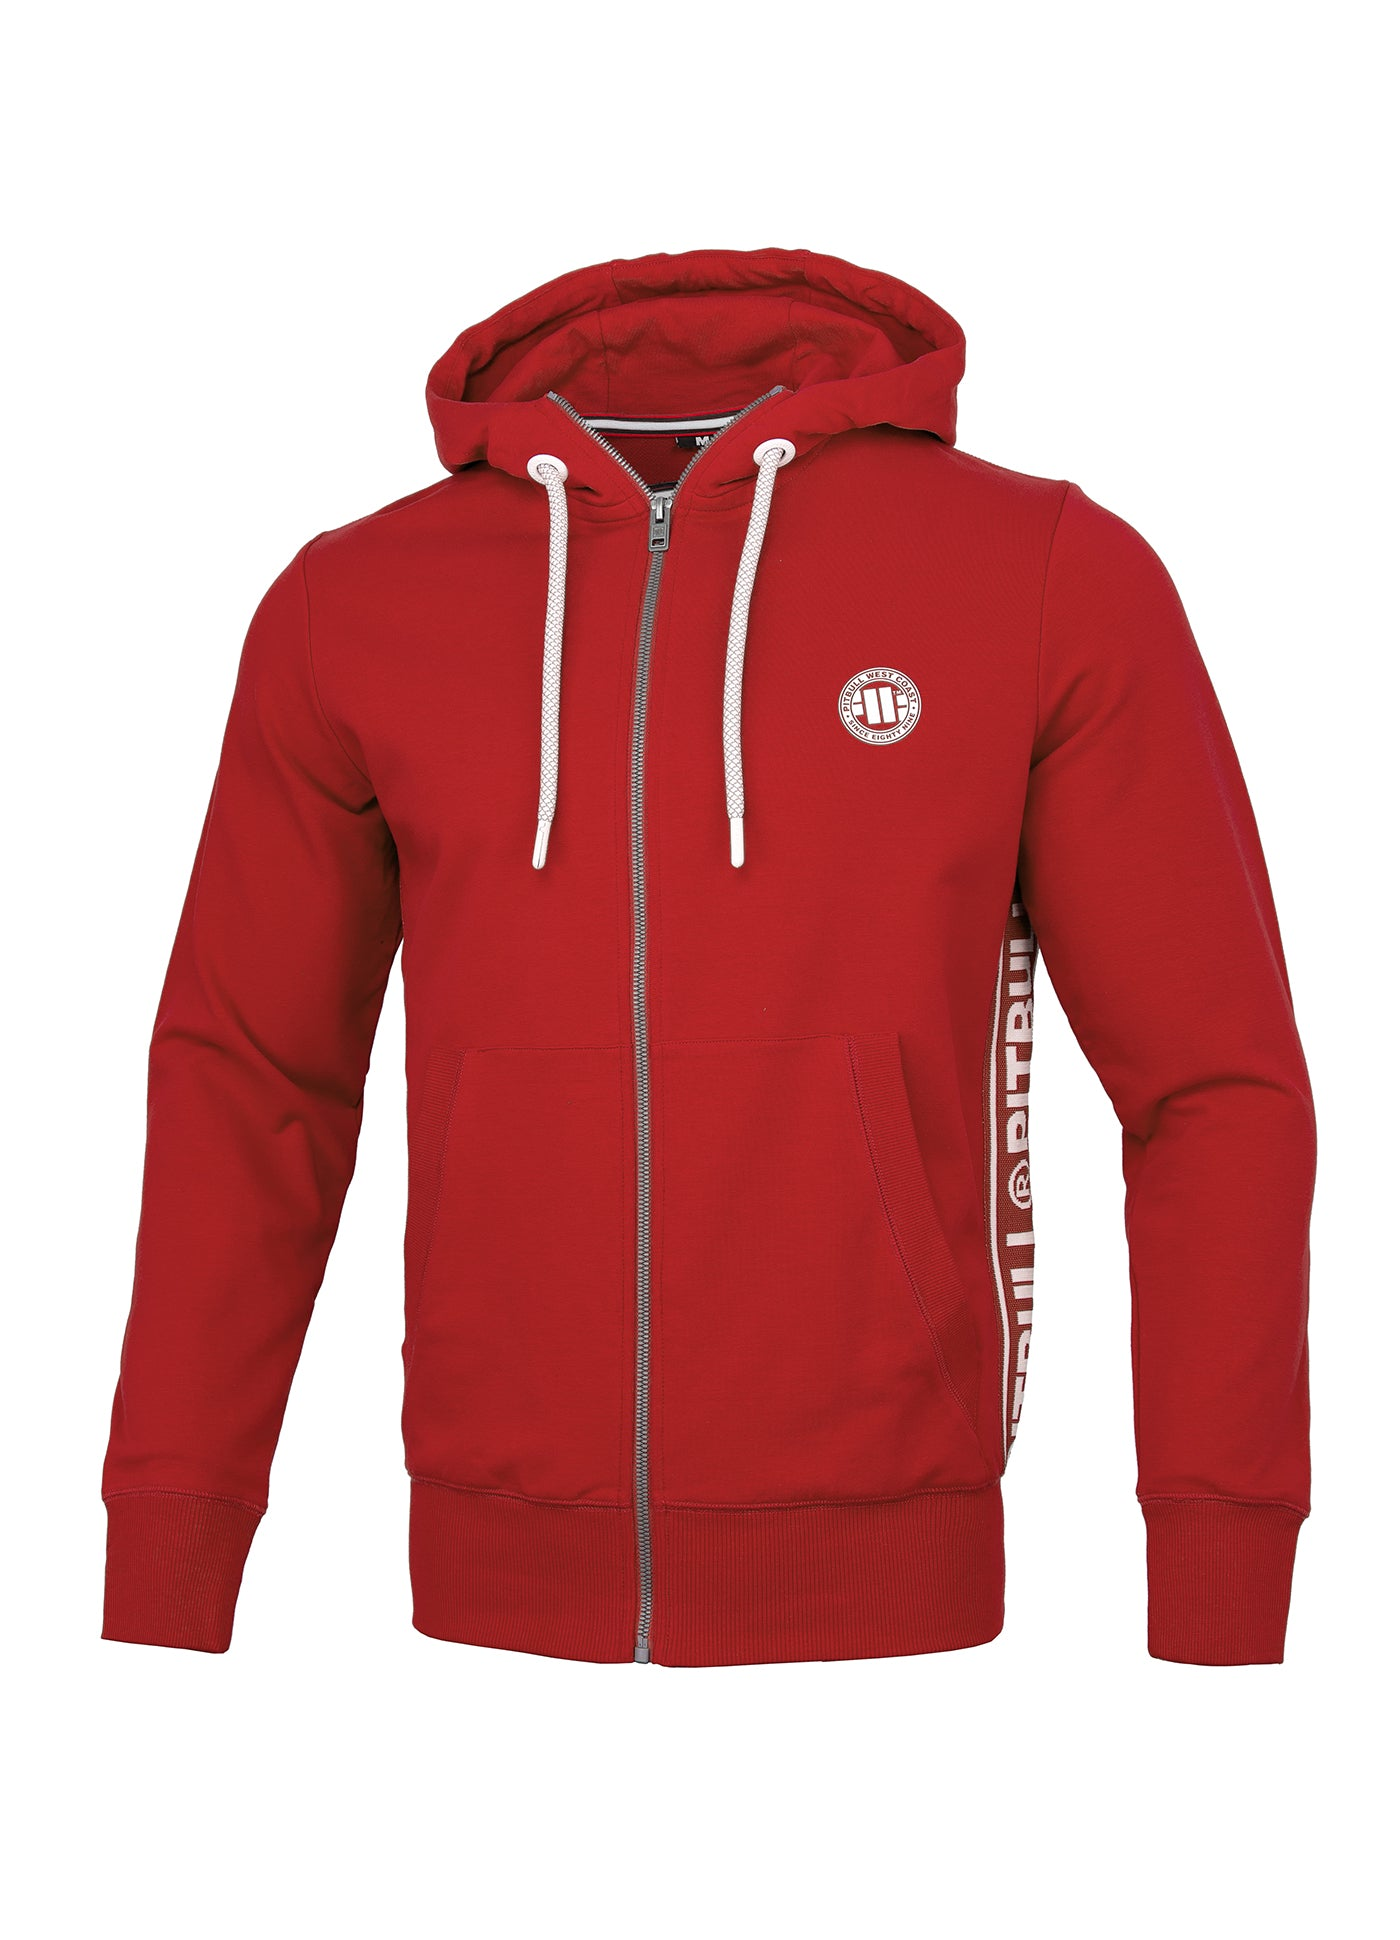 Zipped hooded 'Small Logo' FRENCH TERRY Red - pitbullwestcoast